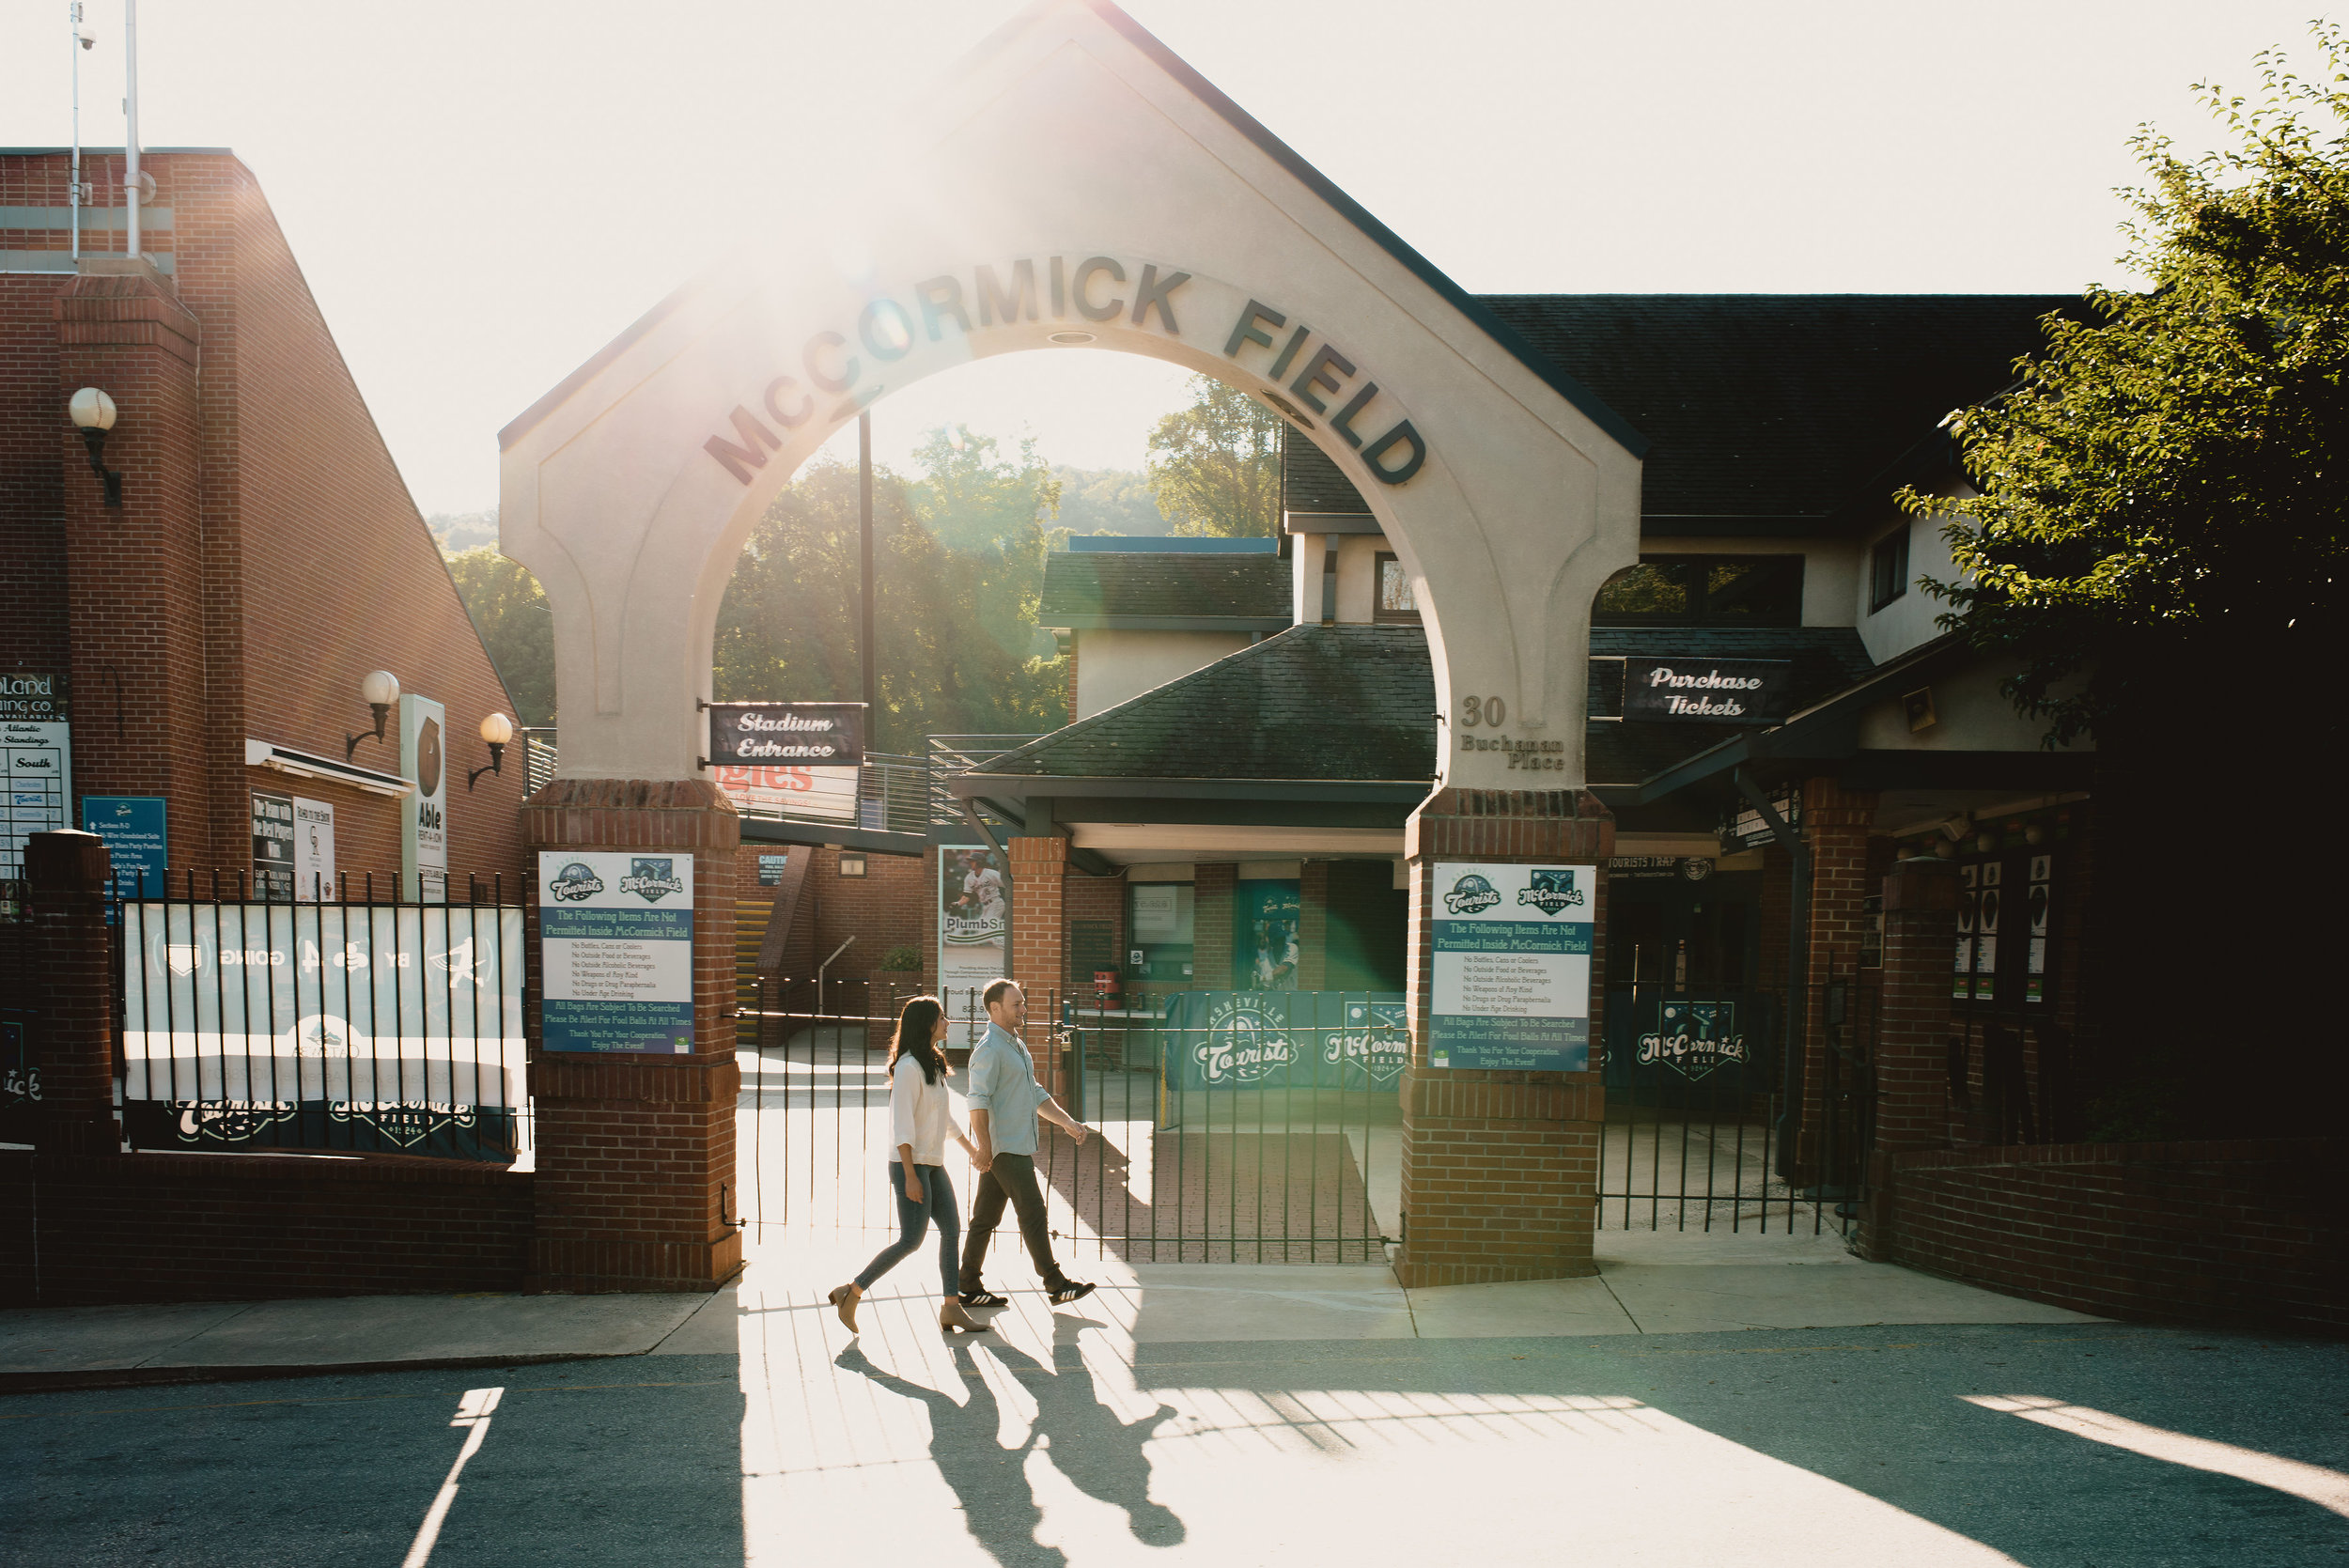 Outside McCormick Field, home to minor league team the Asheville Tourists.